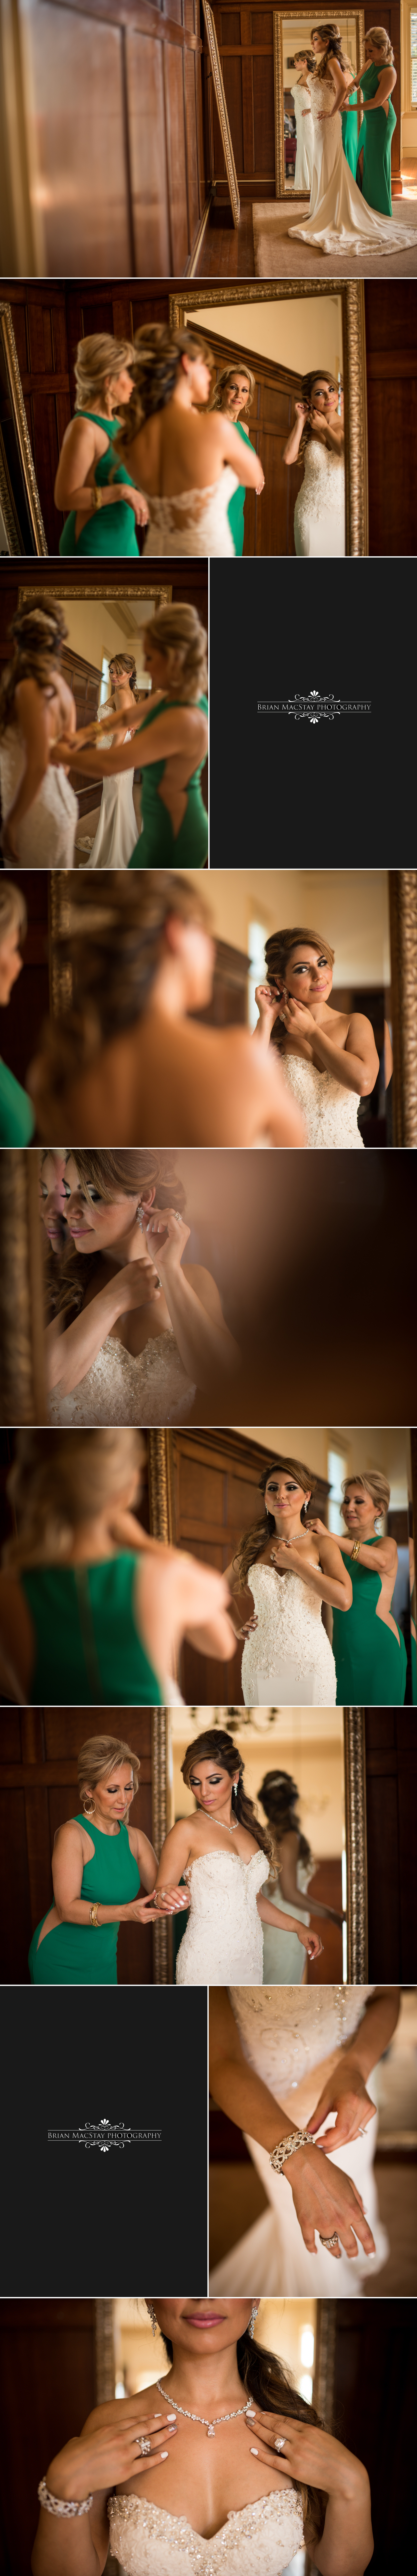 wedding-photo-at-the-kohl-mansion-in-berlingame-by-brian-macstay-photography-4